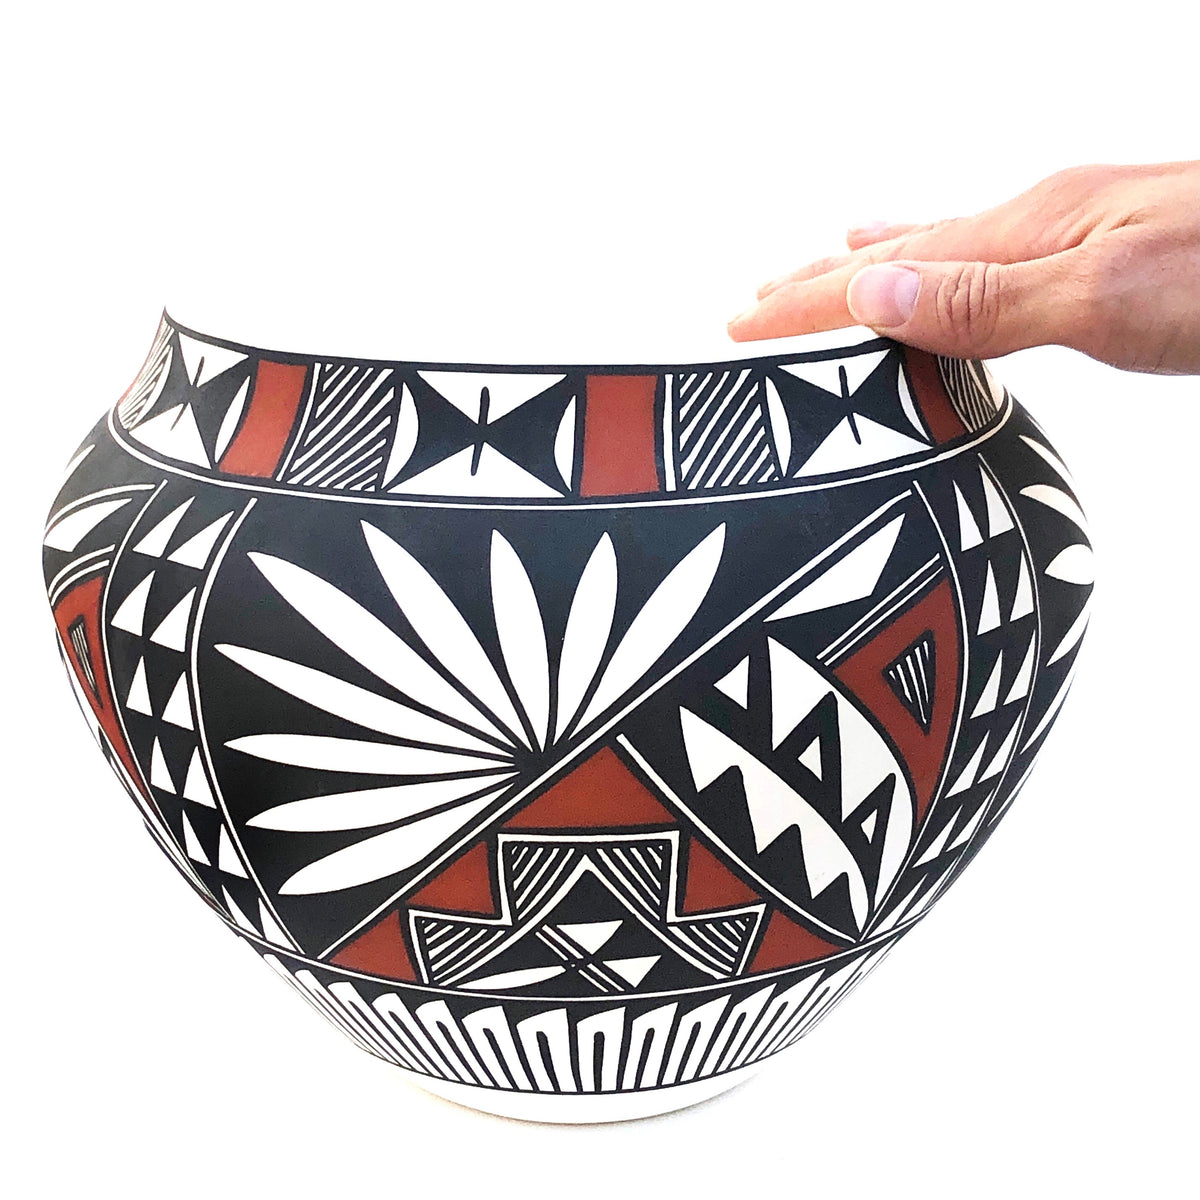 Large Handpainted Acoma Pot by Nicole Victorino